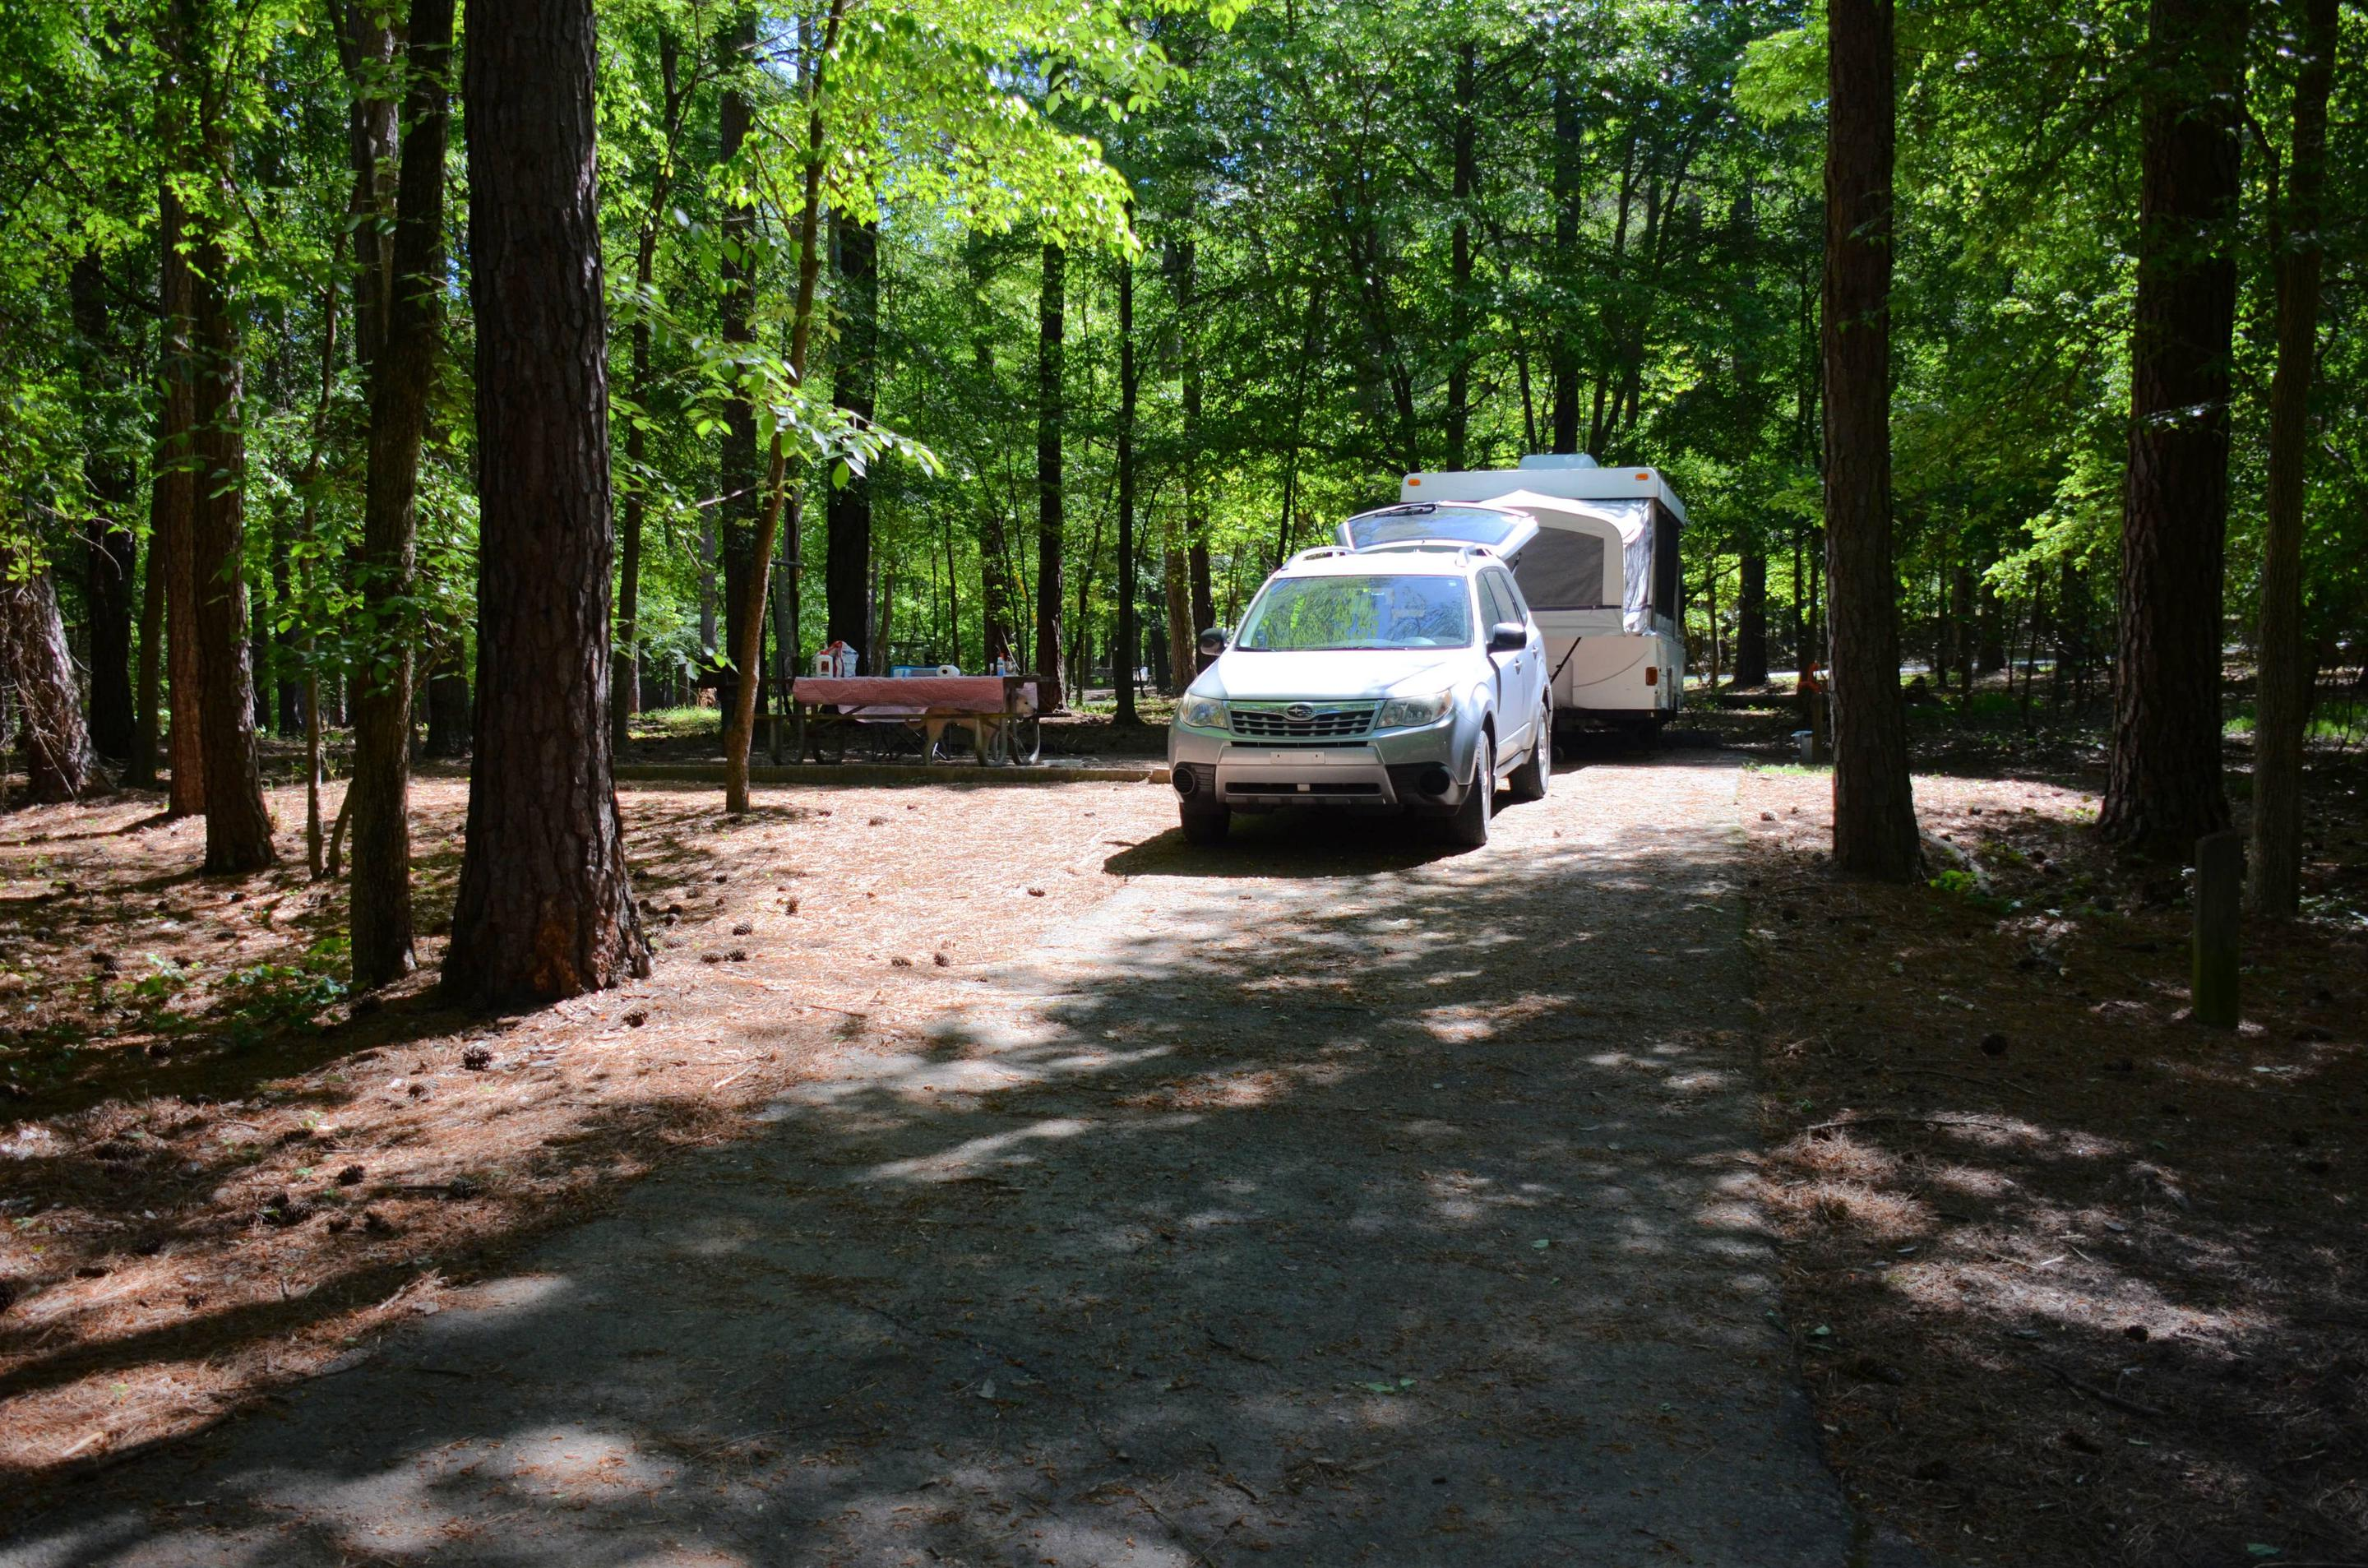 Driveway slope, utilities-side clearance, awning-side clearance.McKinney Campground, campsite 69.